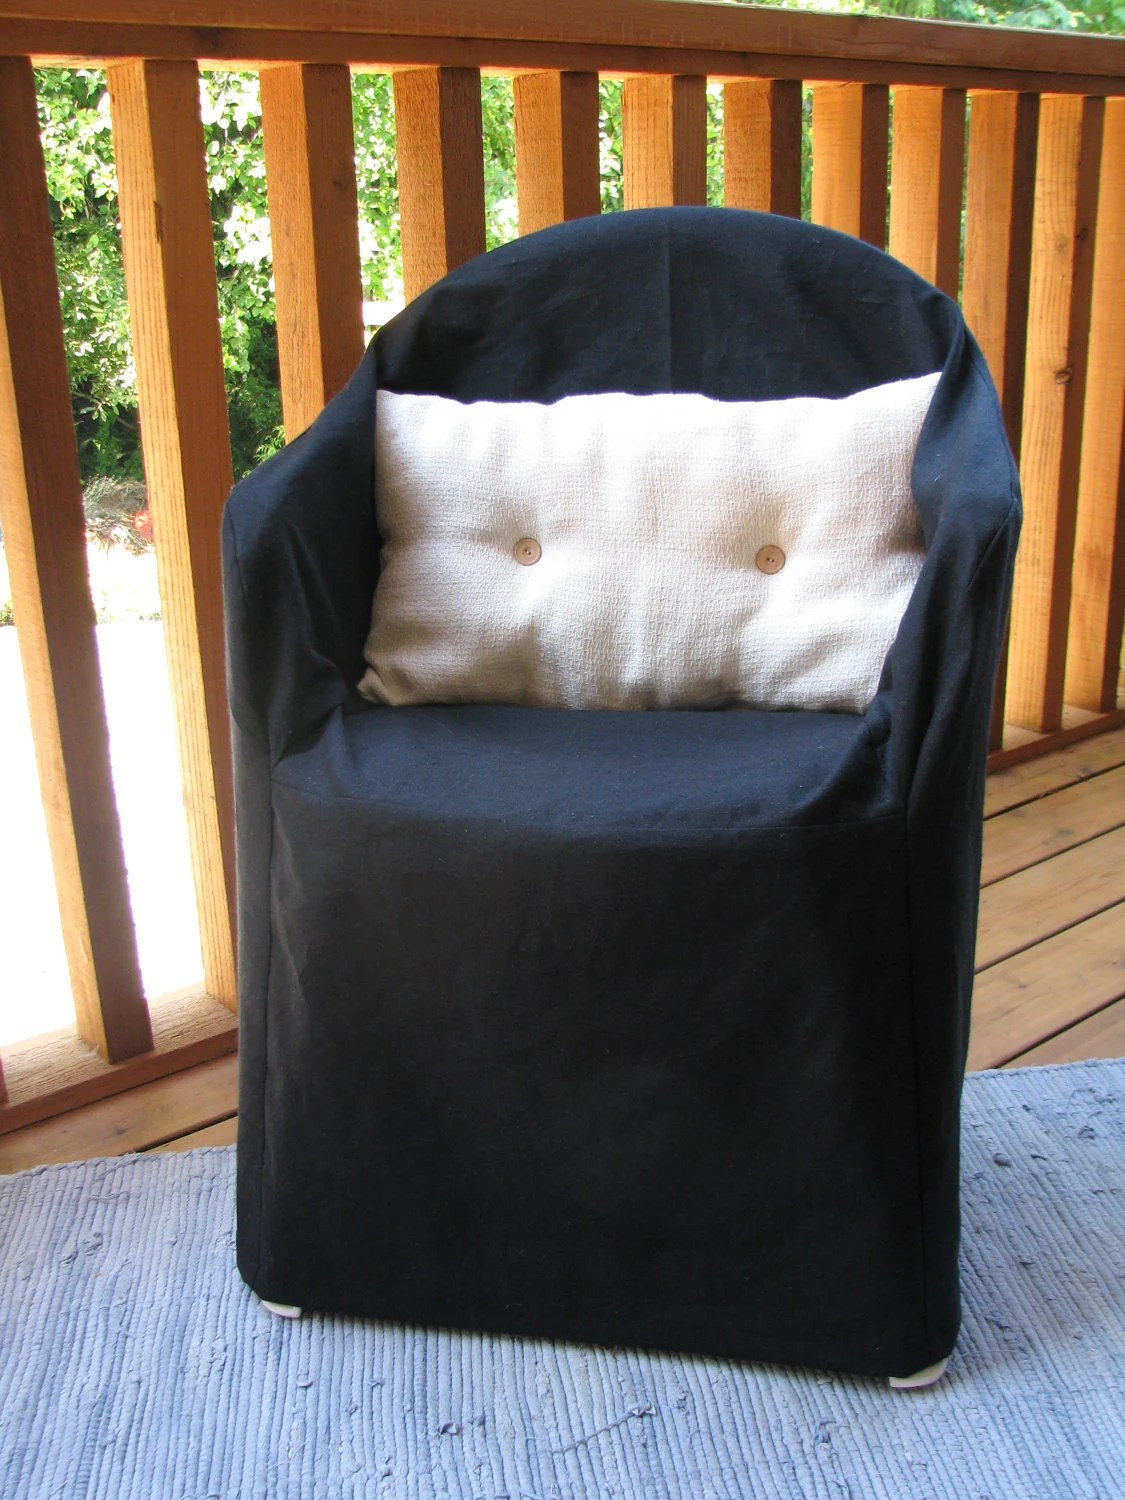 party chair covers walmart sling replacement black resin organic slipcover hemp cotton